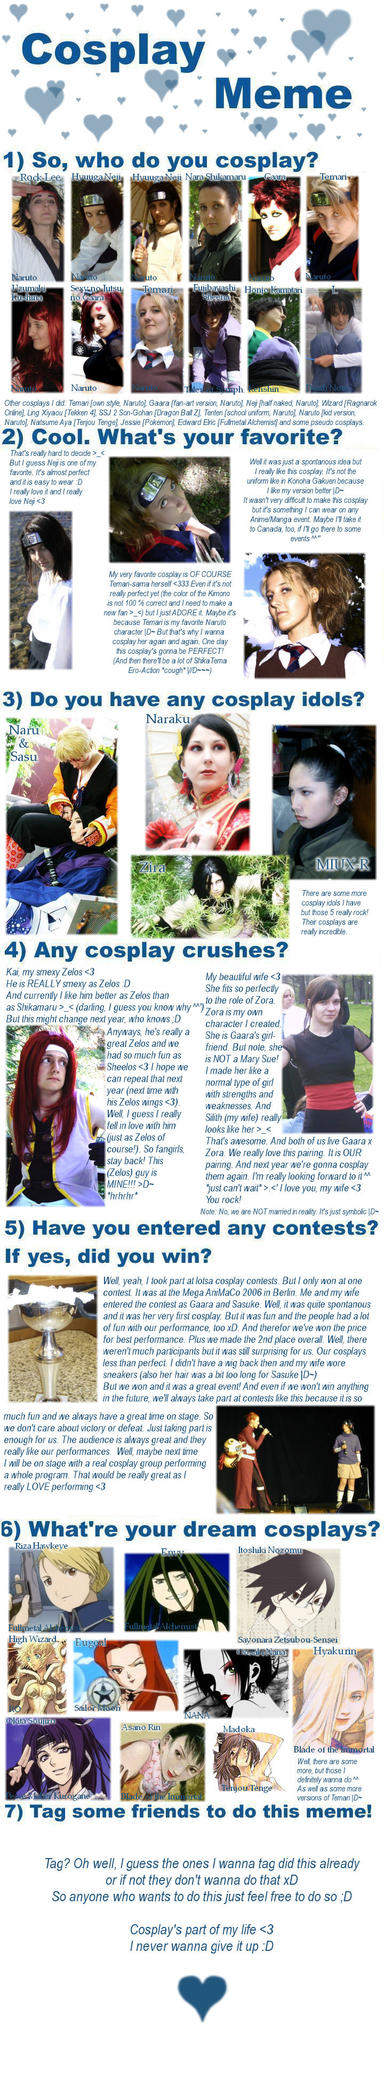 Cosplay Meme by KikoBuntstift